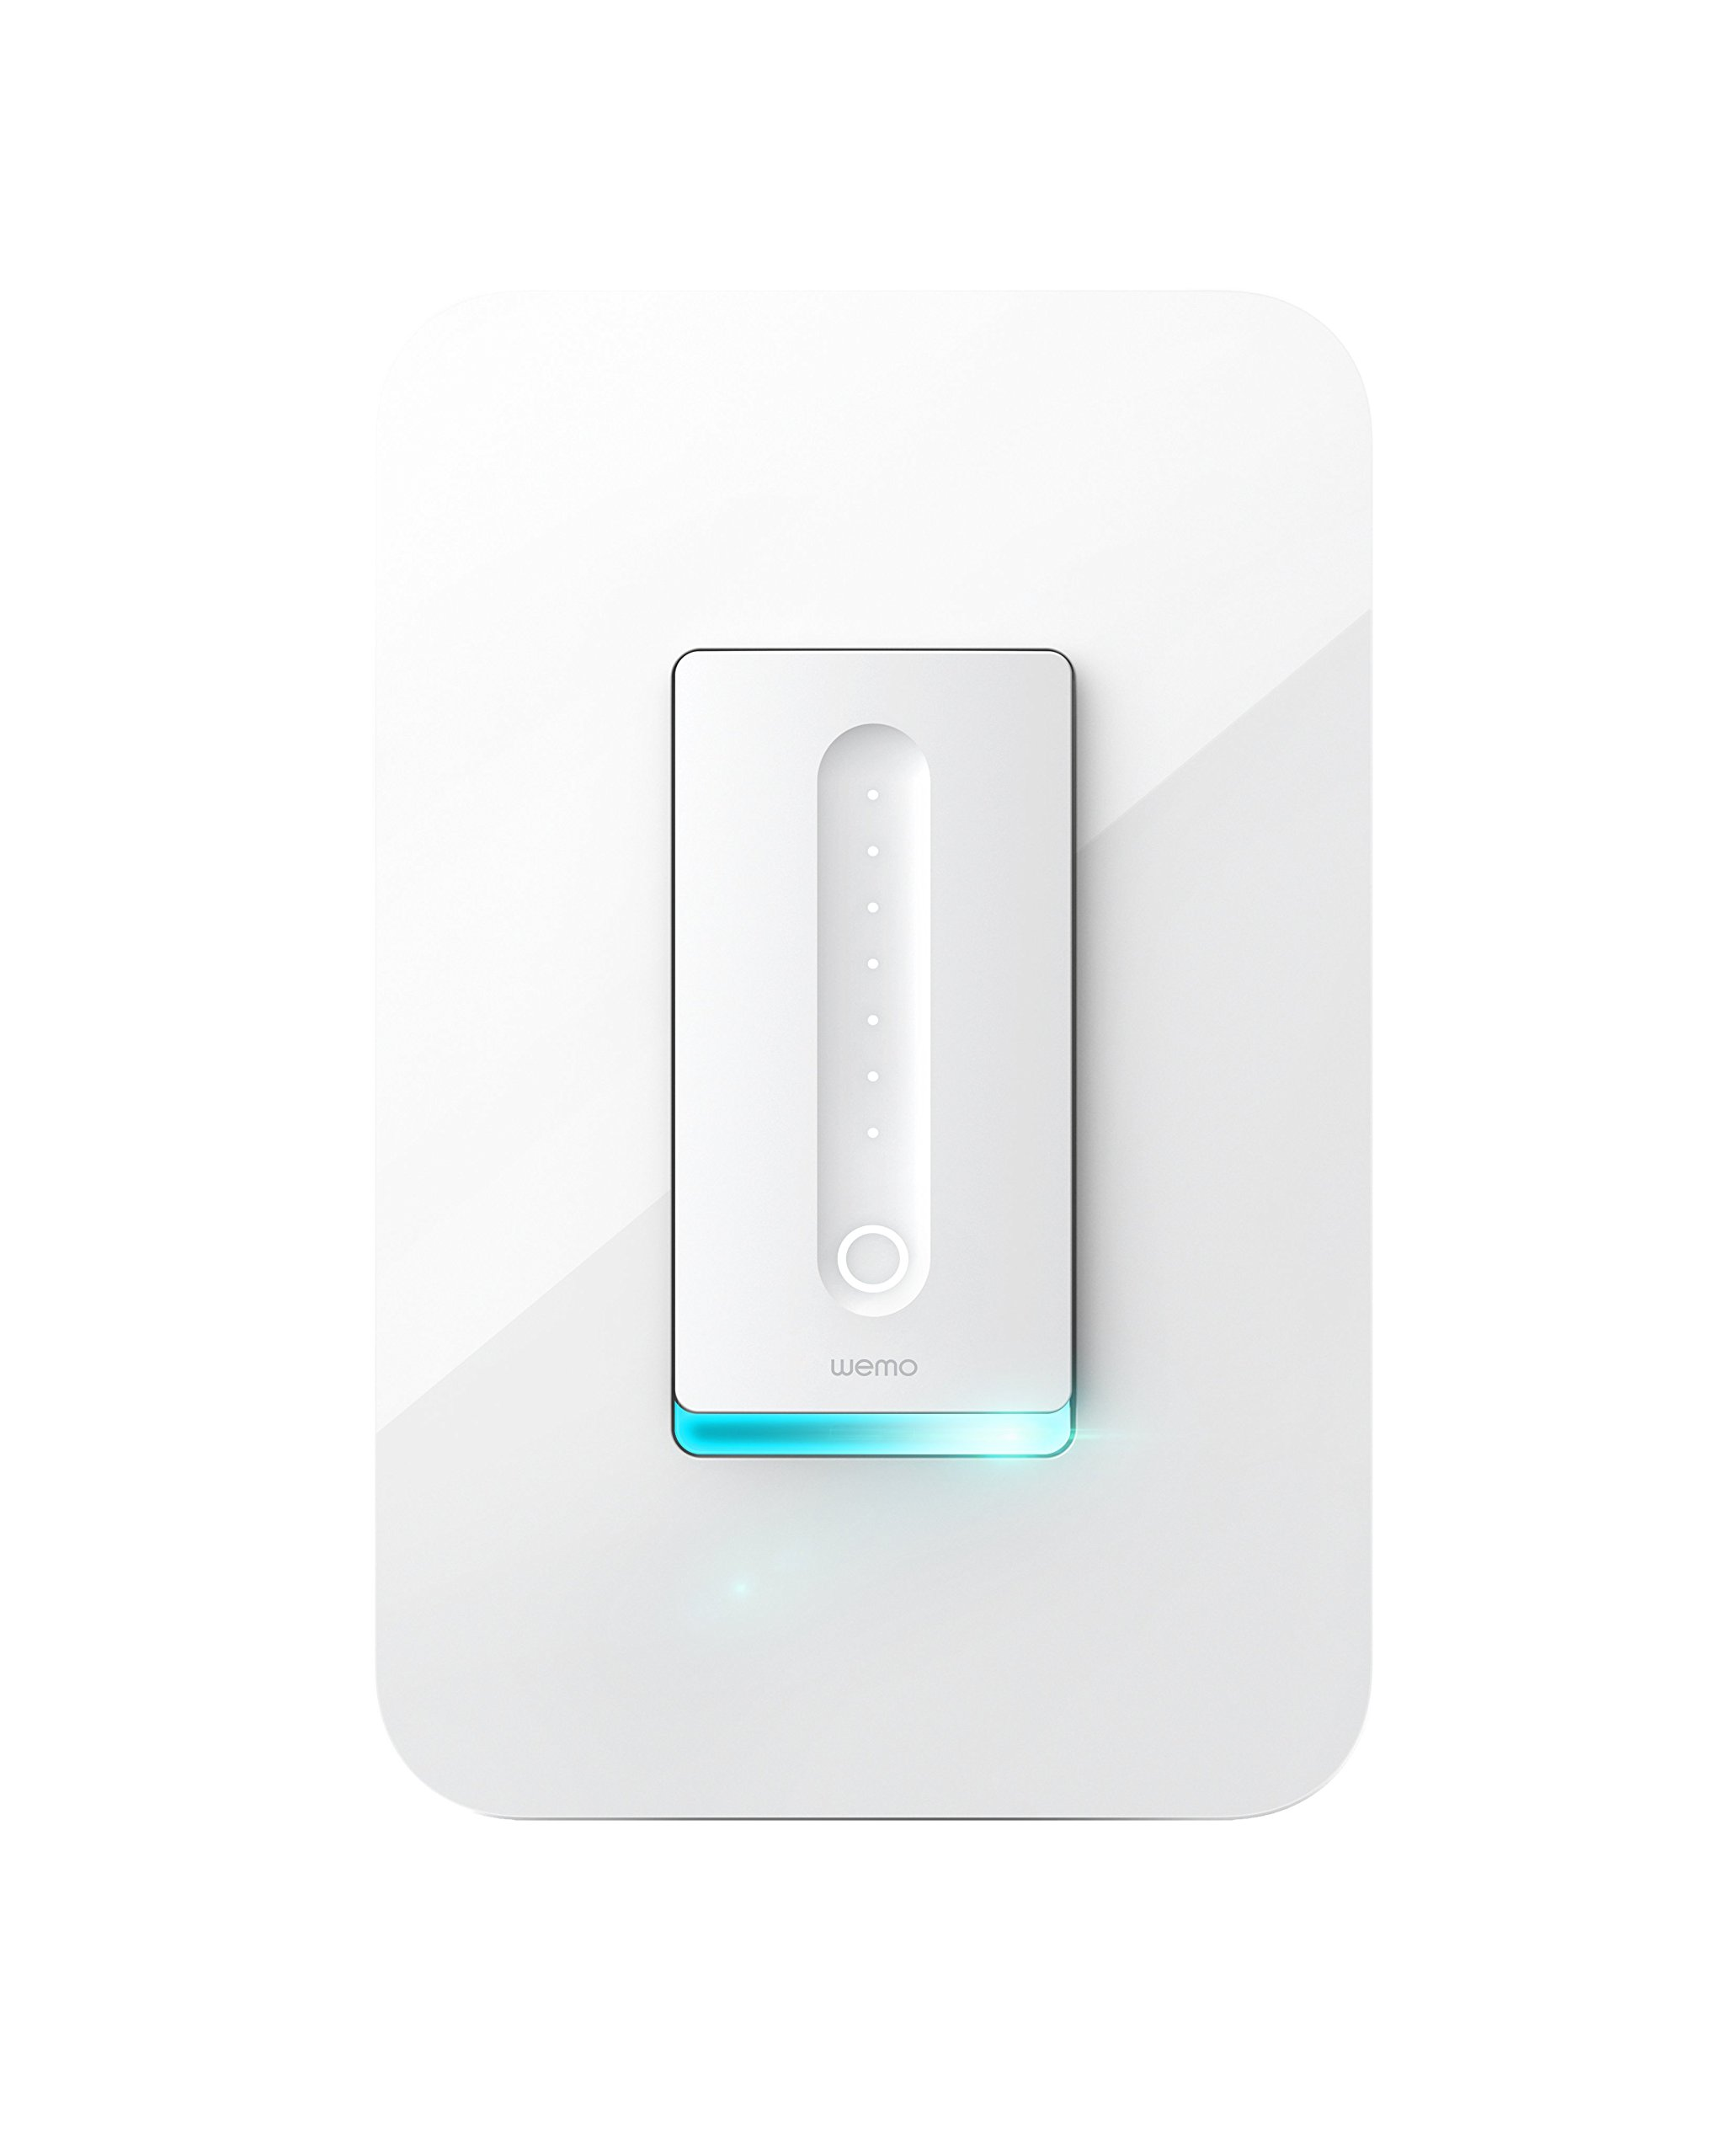 WeMo Dimmer Wifi Light Switch, Works with Alexa, the Google Assistant and Apple Homekit (F7C059) by WeMo